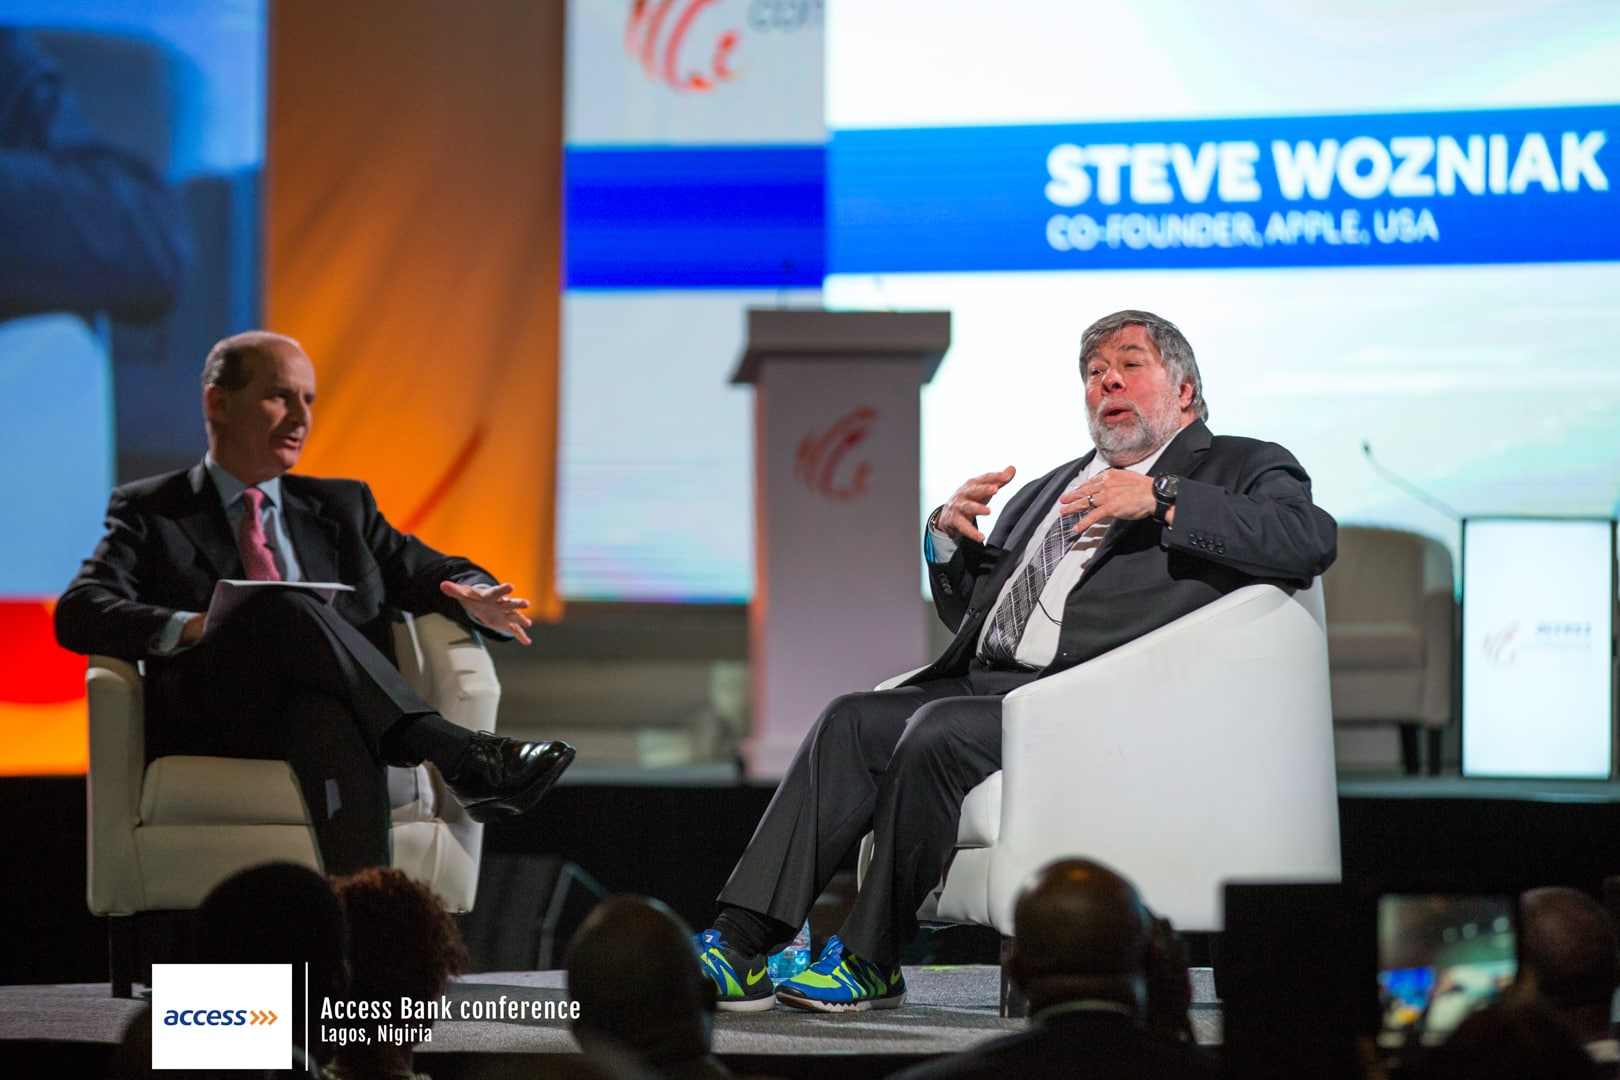 Steve Wozniak at a conference interview